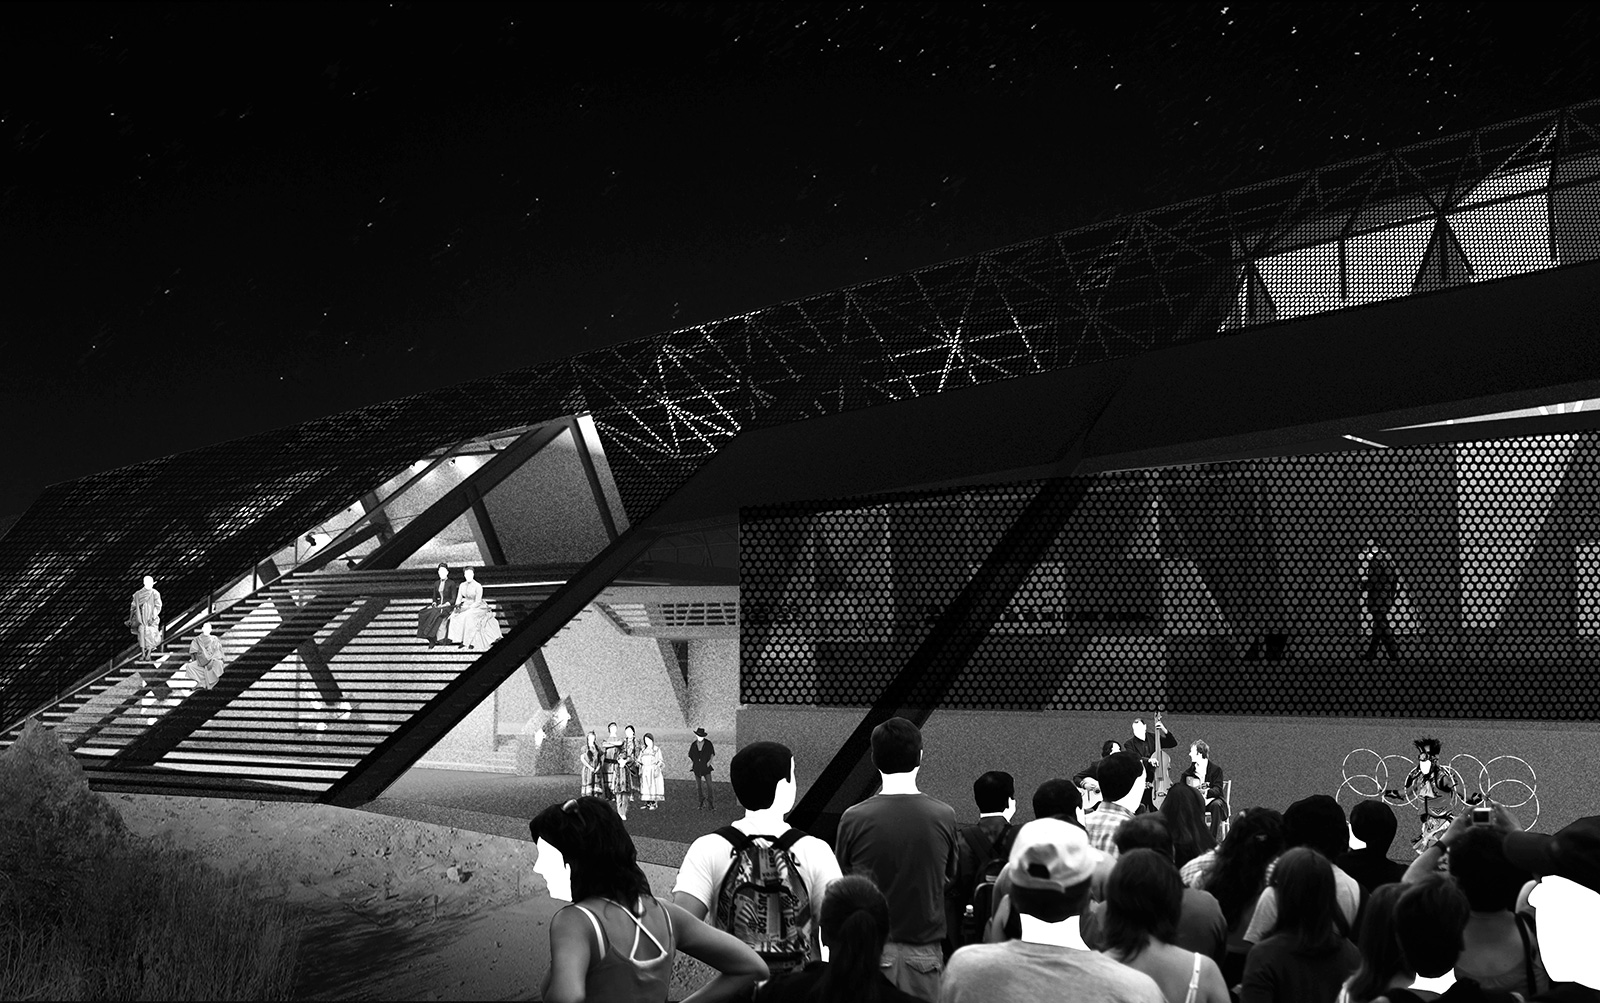 Exterior perspective of the RACA gallery opening up to the desert landscape for a nighttime performance